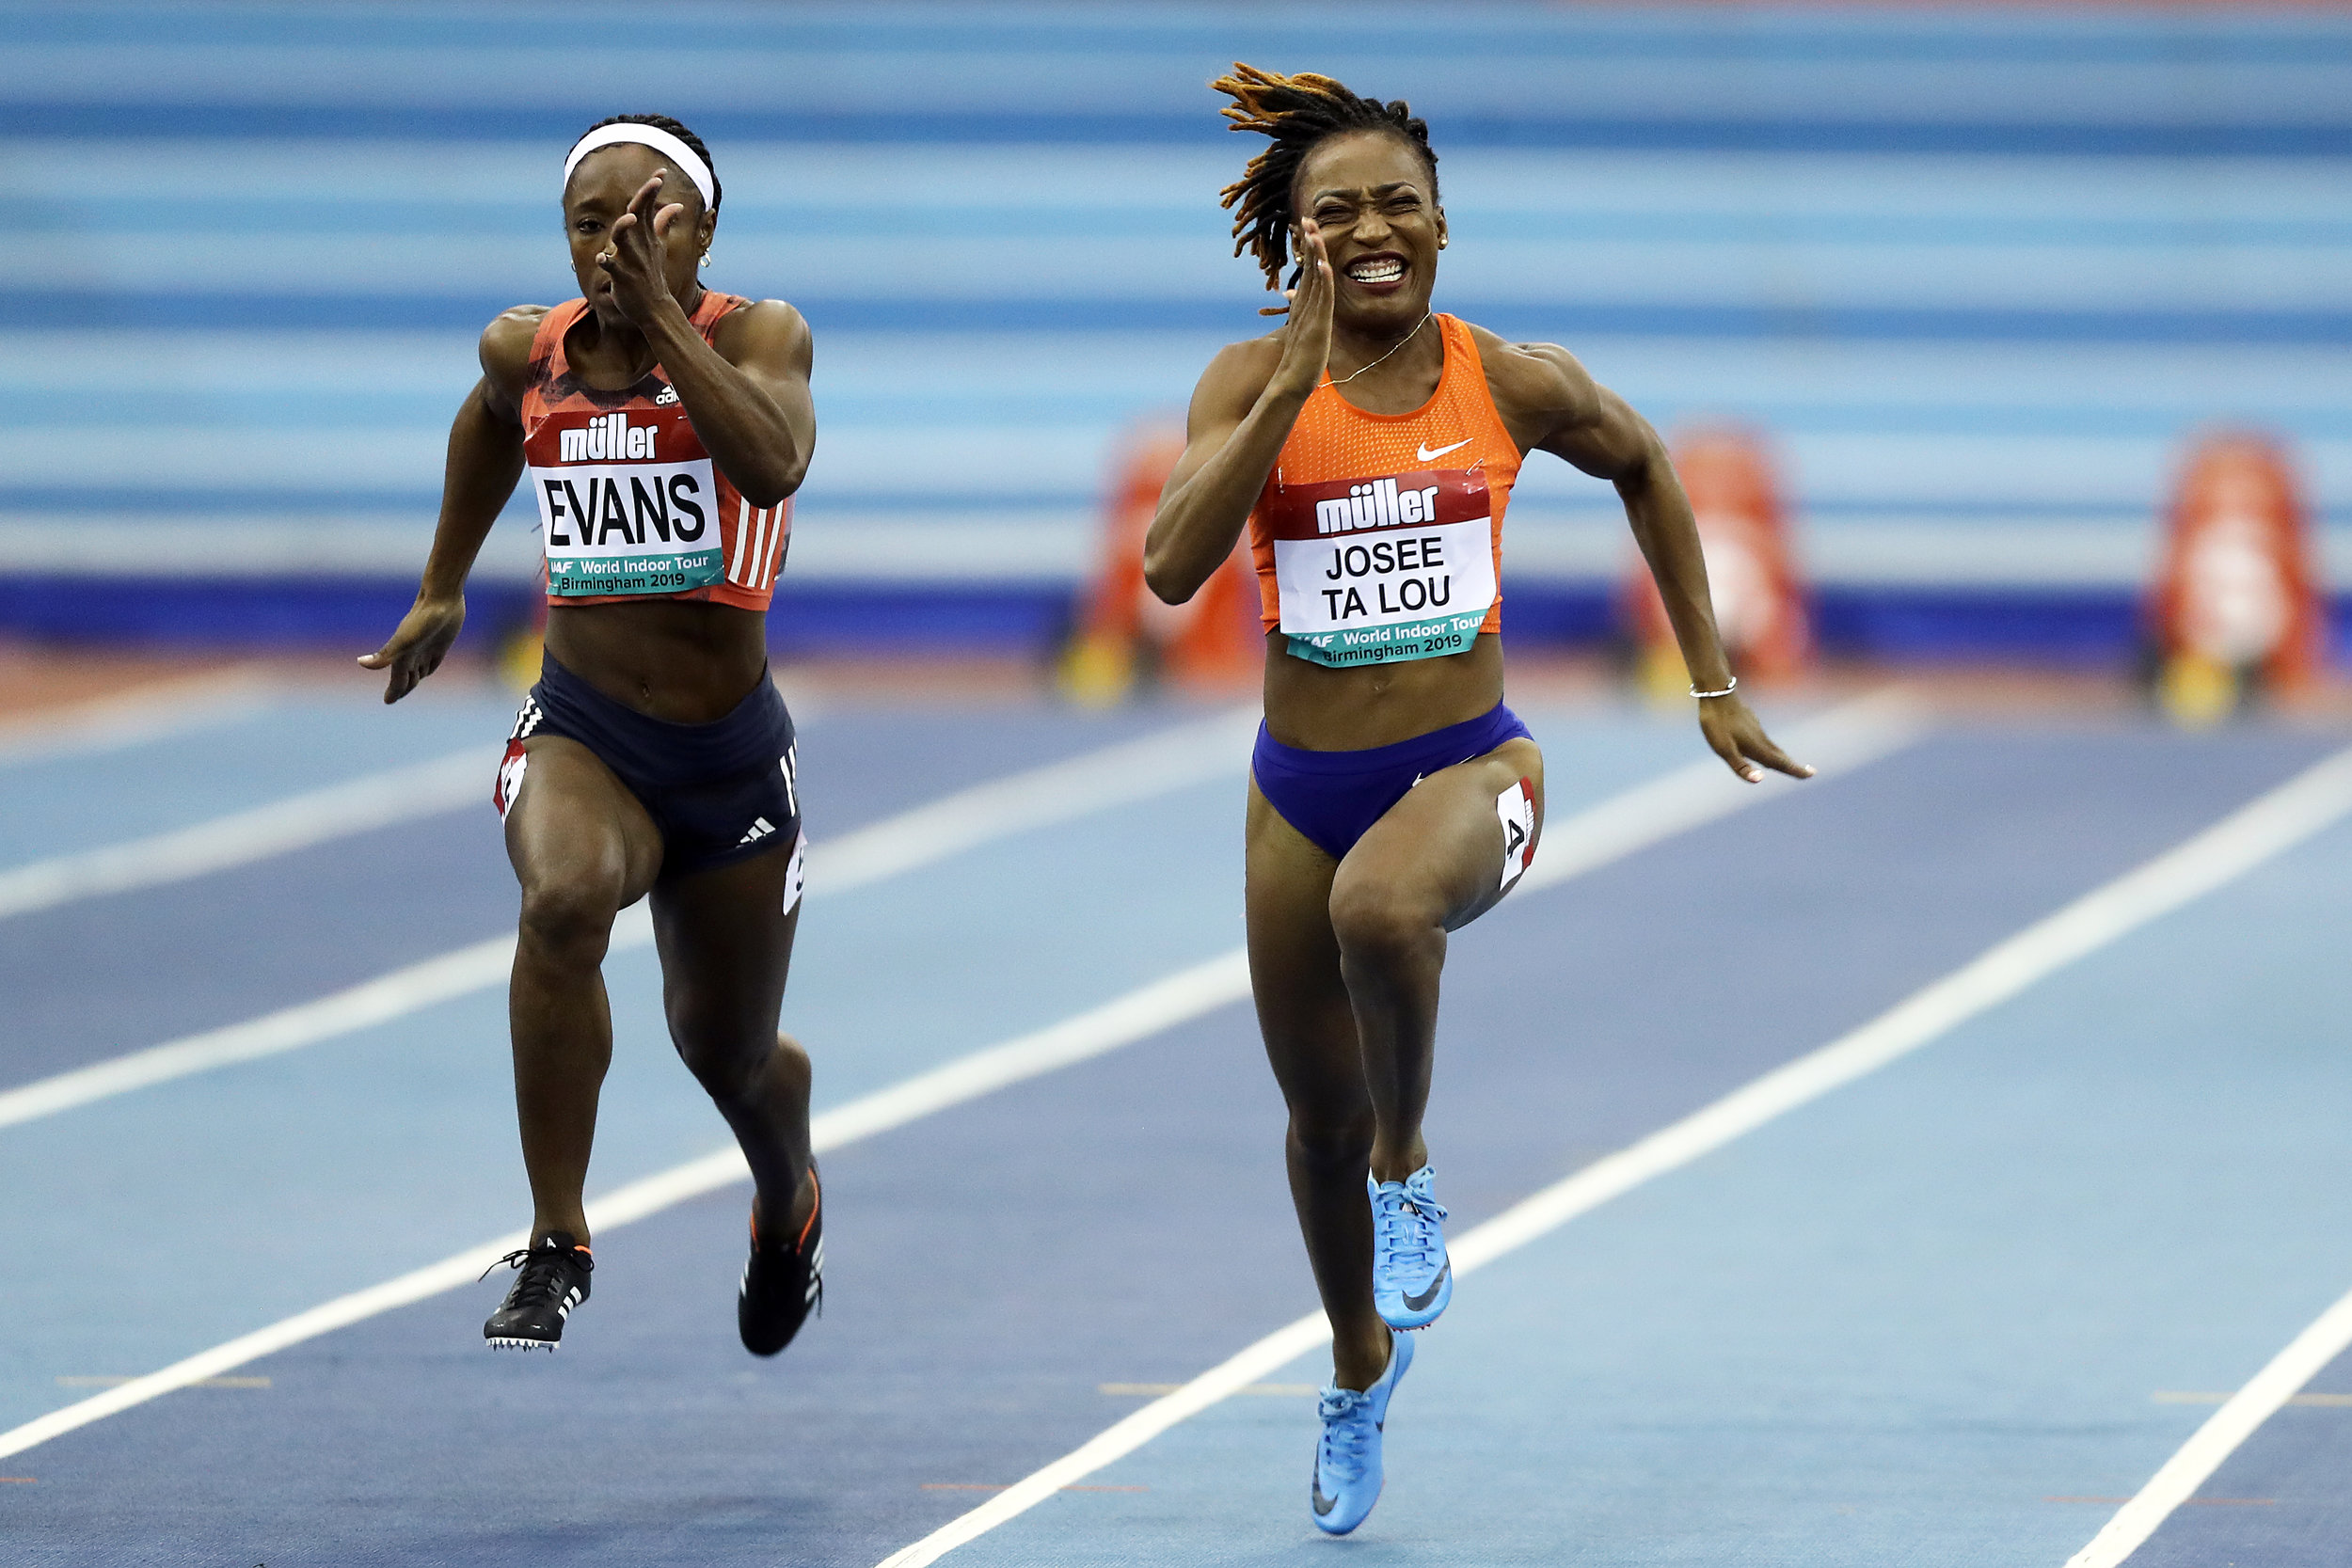 Credit: British Athletics/Getty